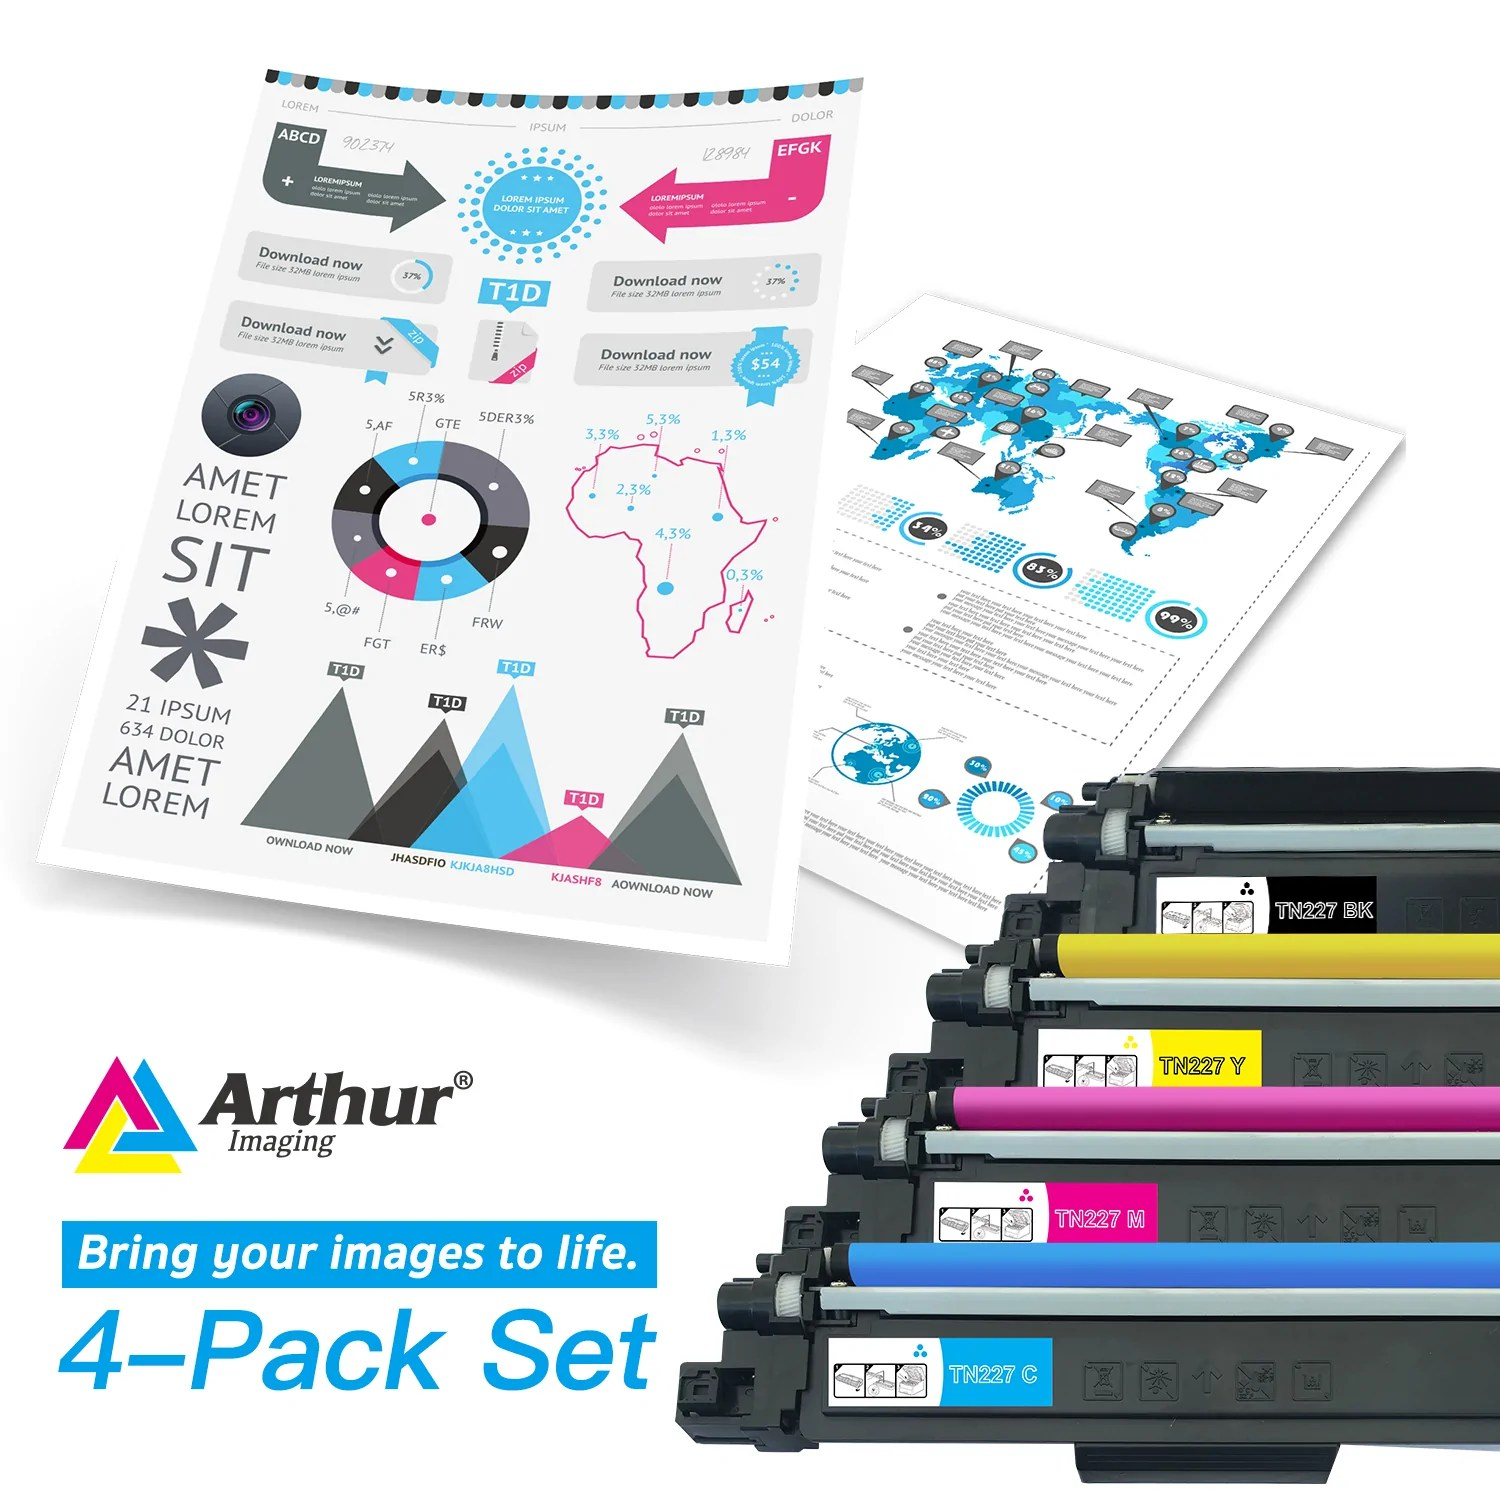 medium resolution of  arthur imaging compatible toner cartridge replacement for brother tn223 tn227 1 black 1 cyan